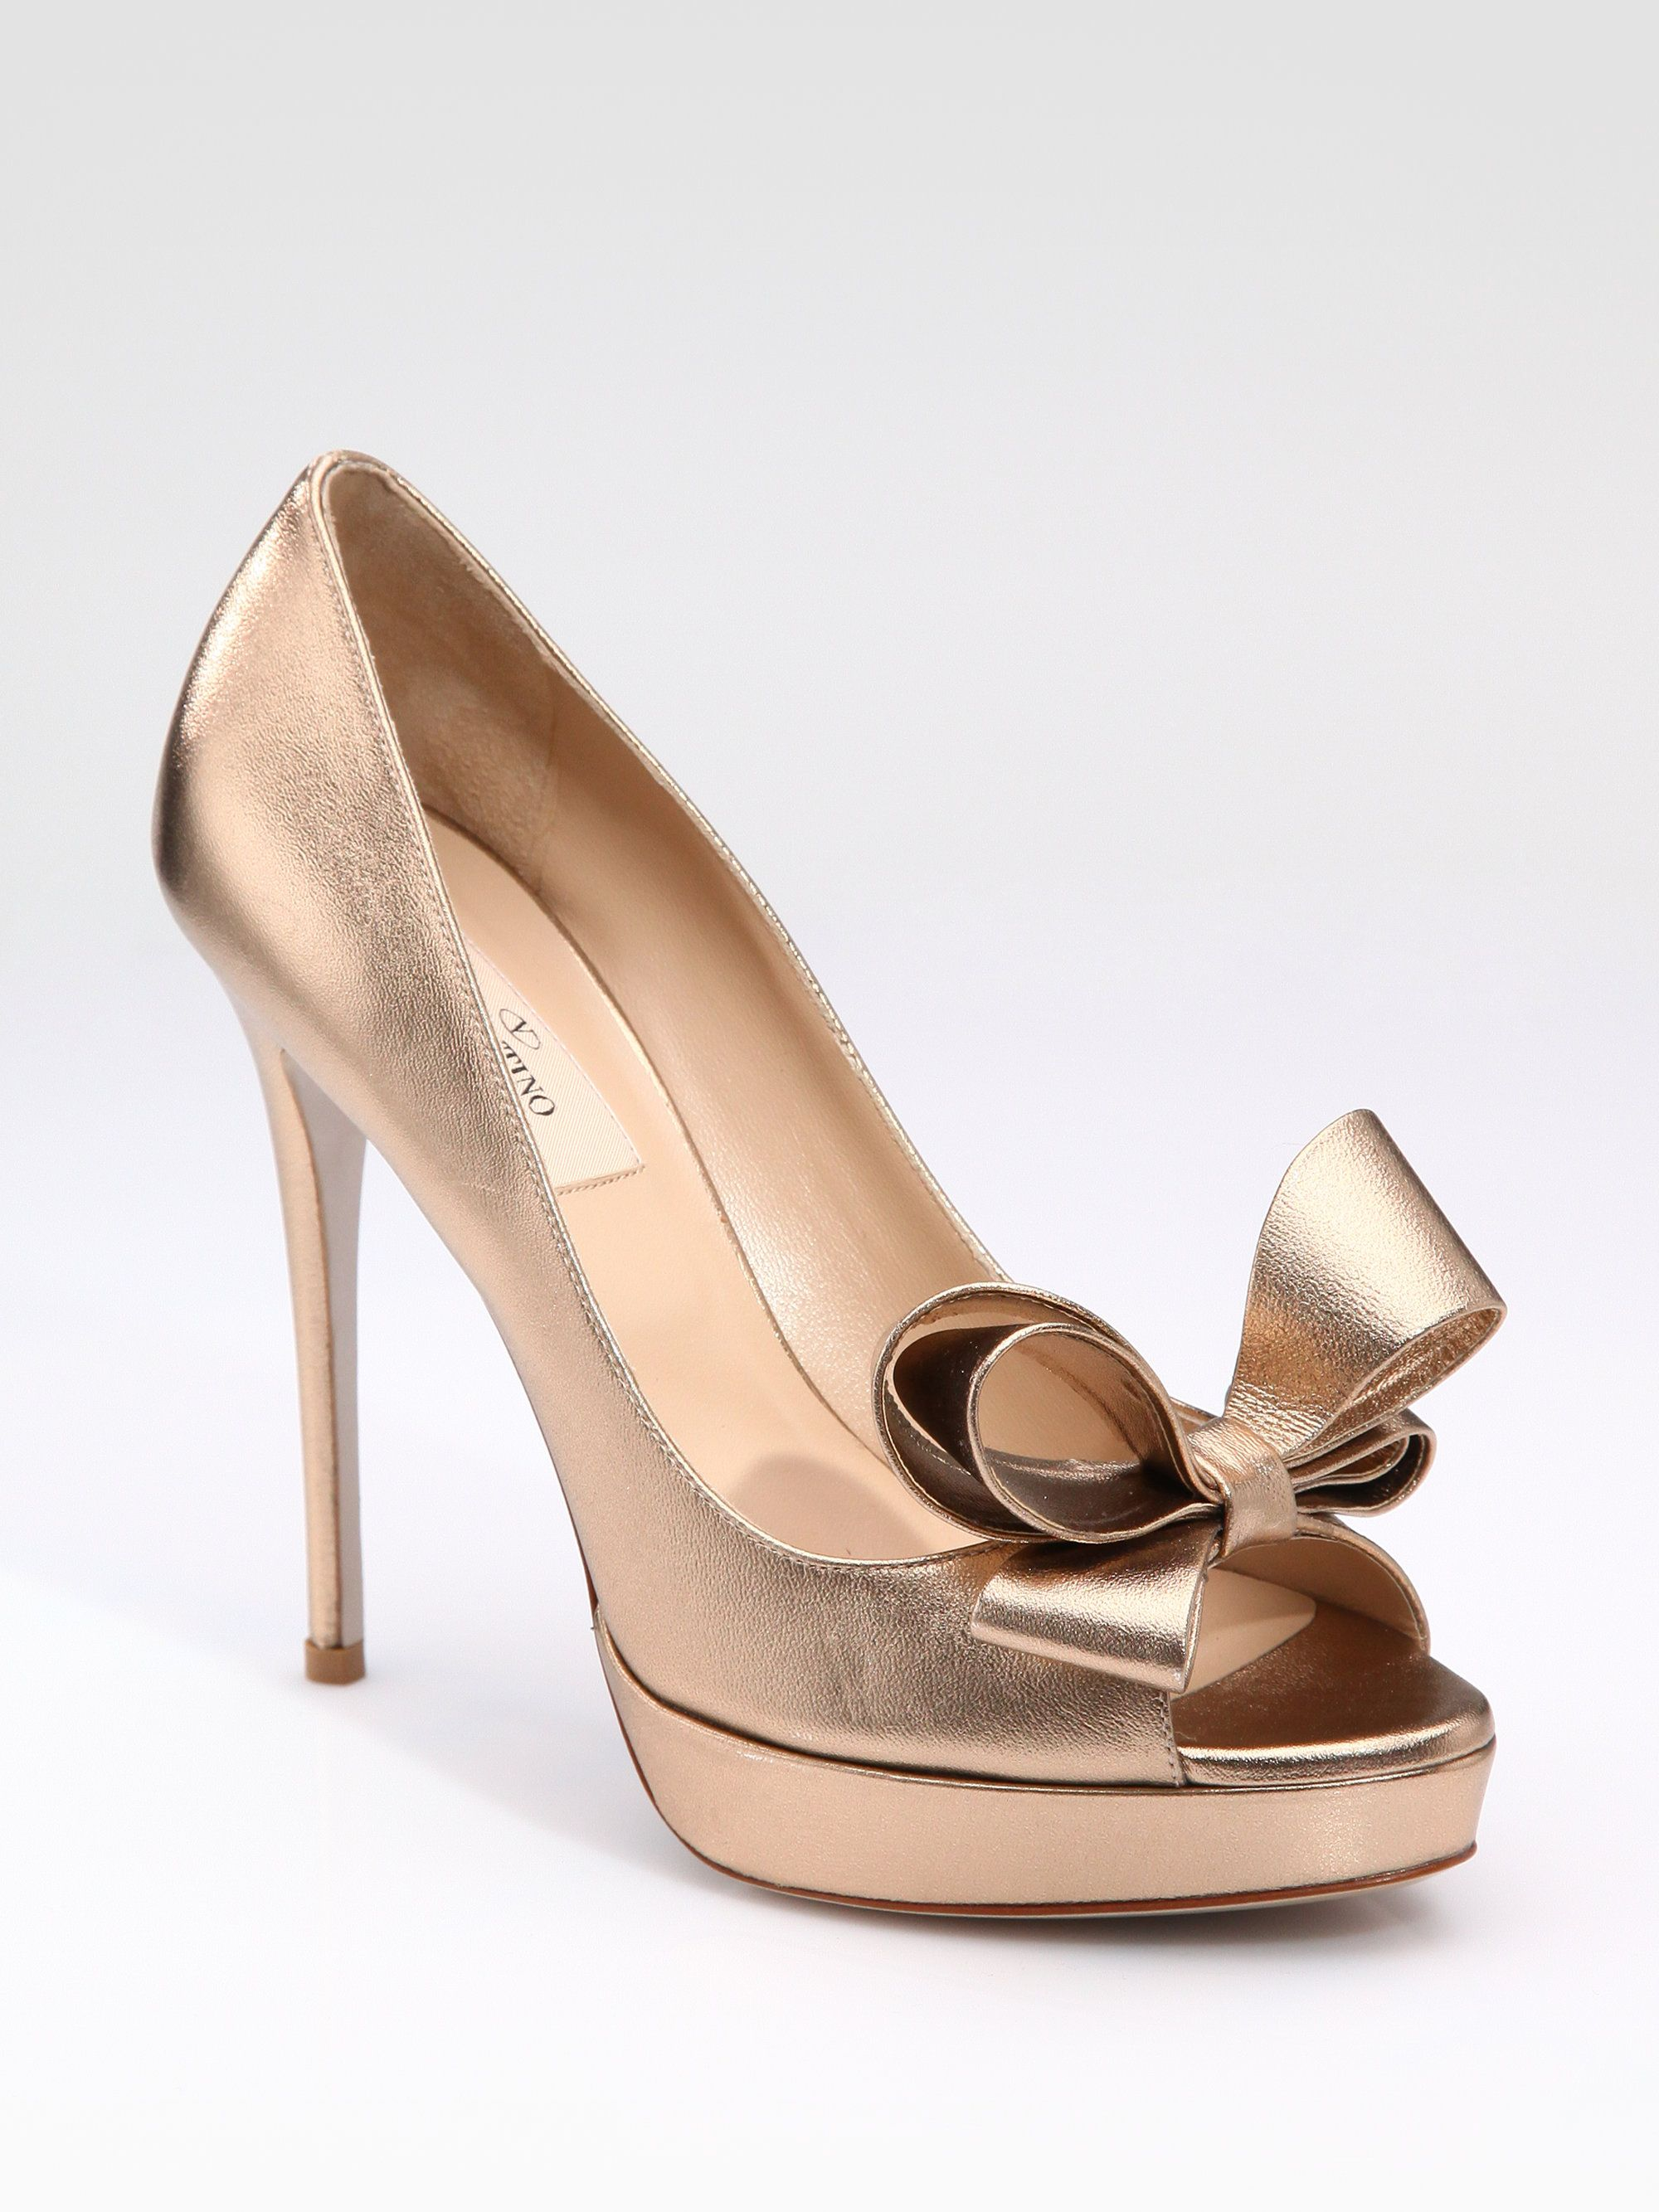 d3e80ed8af3d Valentino Couture gold heels with gold leather bow